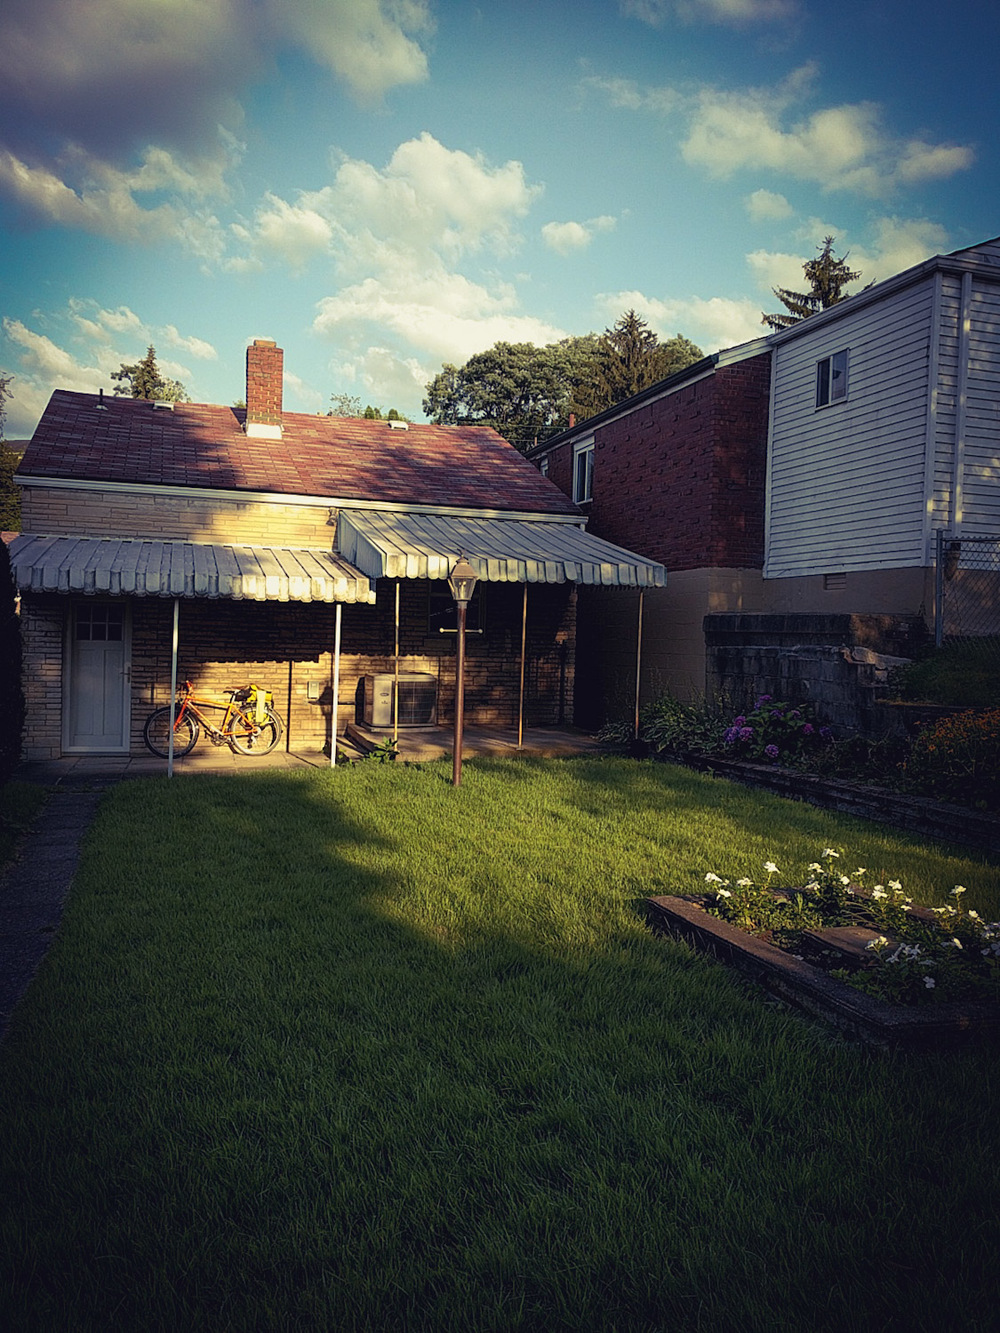 photo of a tidy little backyard near sunset with a long tree shadow and a bicycle parked under the porch awning